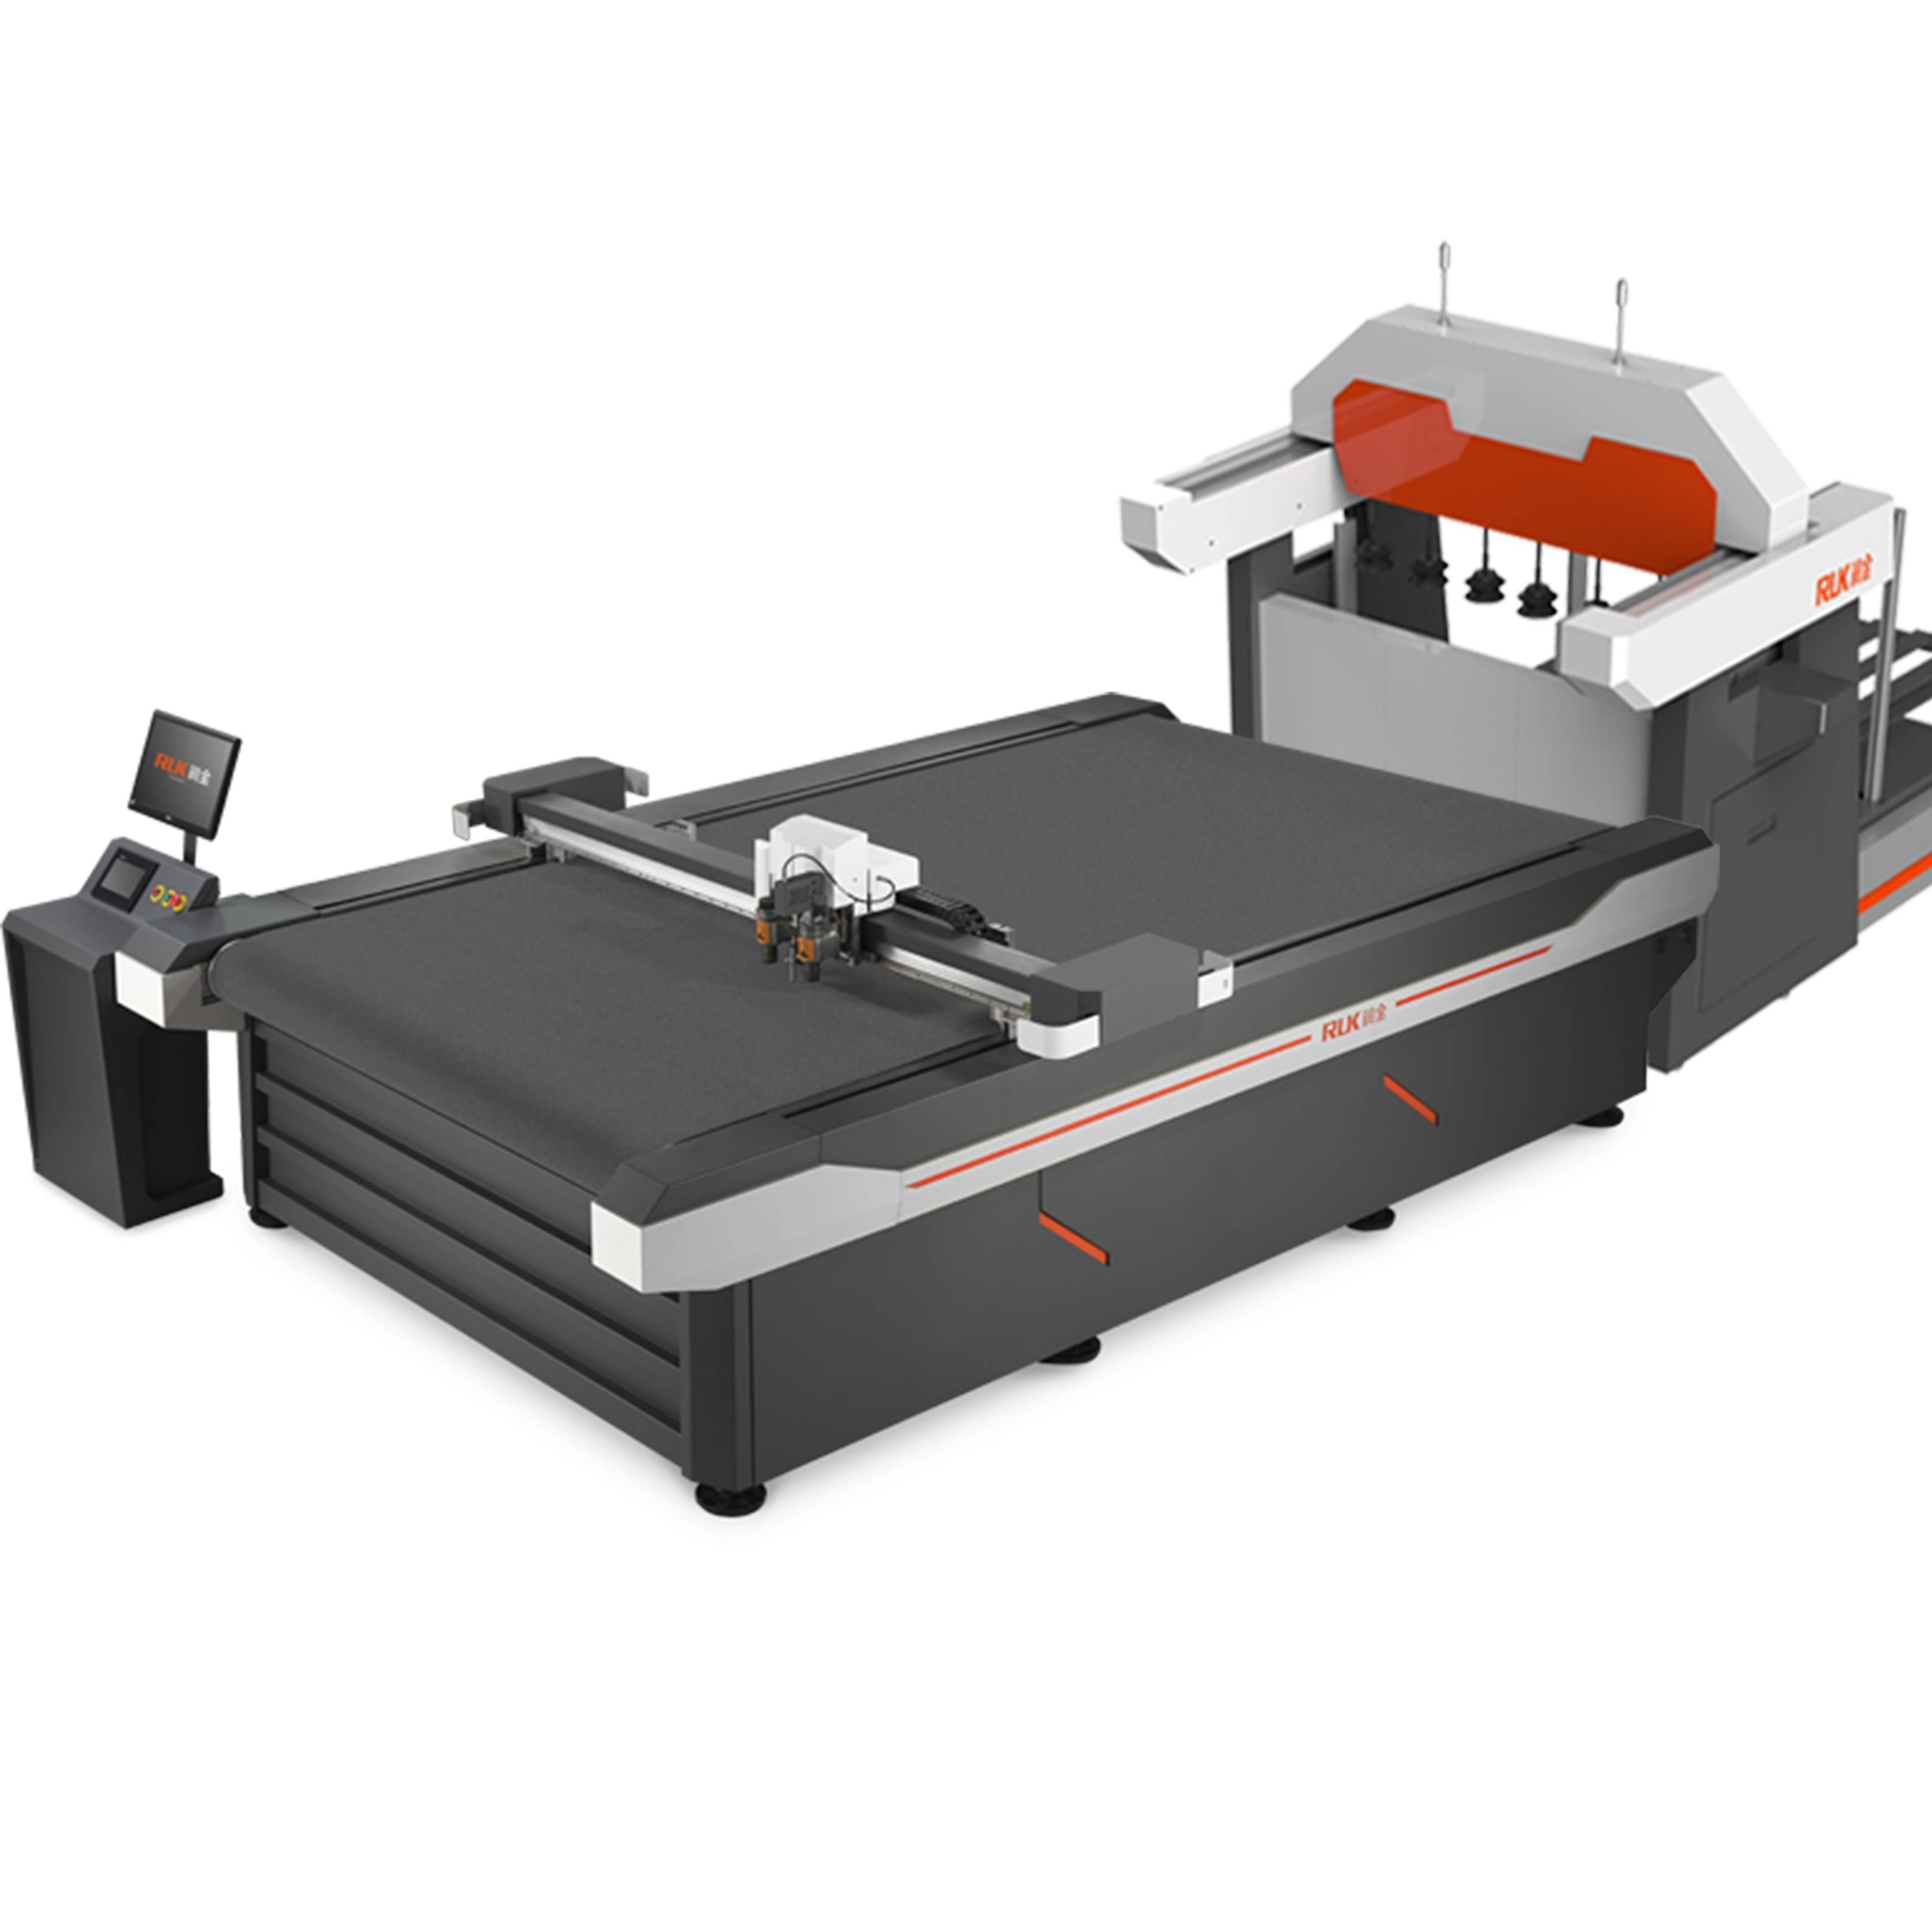 Flatbed knife cutting machine